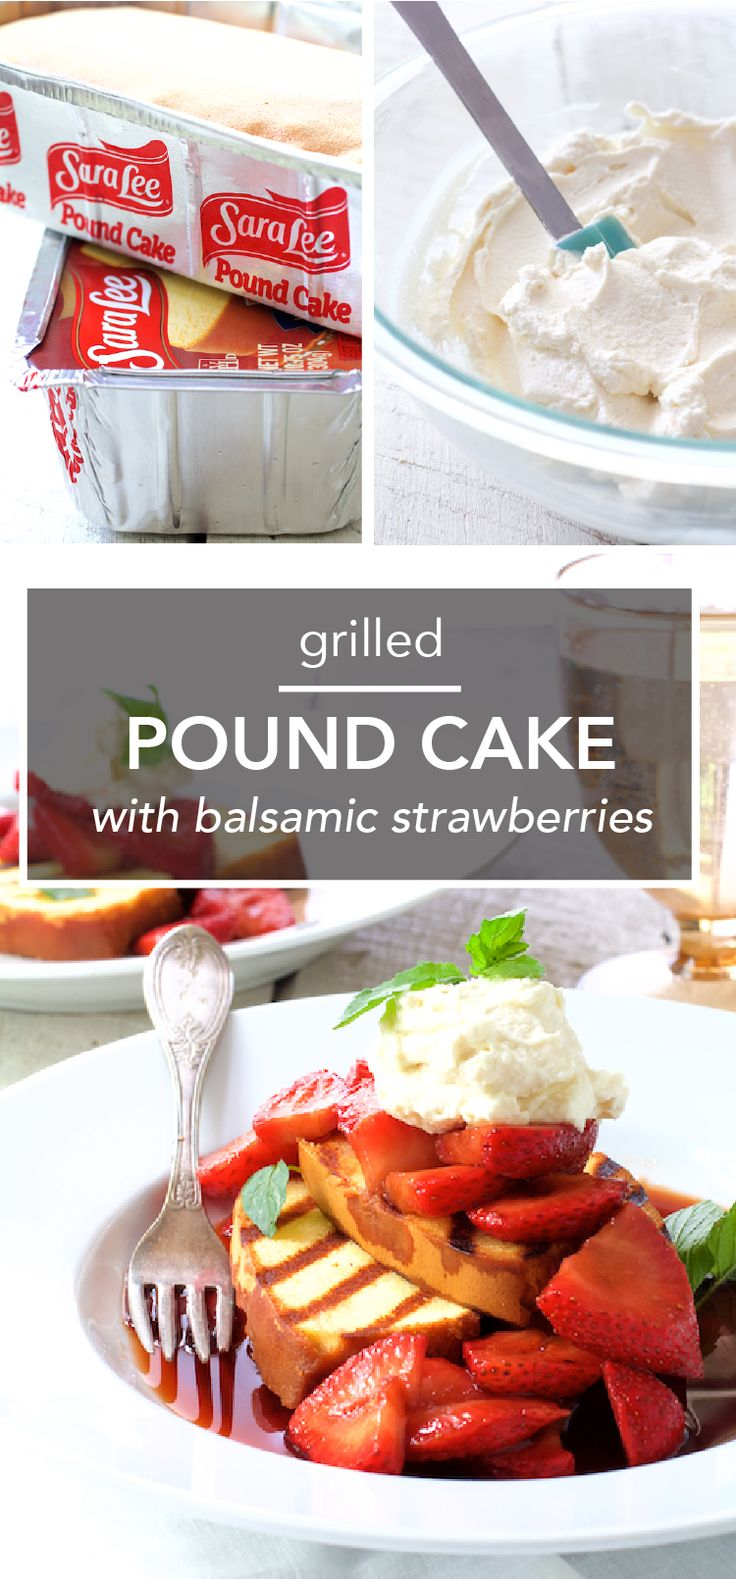 You've got your appetizers, entree, and sides set for your summer grill-out, now all that's left is to find the perfect dessert. Thanks to this recipe for Grilled Sara Lee Pound Cake with Balsamic Strawberries and Mascarpone Cream, you don't have to turn off the barbecue to make this sensational sweet treat! Plus, you'll love that you can pick up all the ingredients you need for this spin on strawberry shortcake at Kroger.